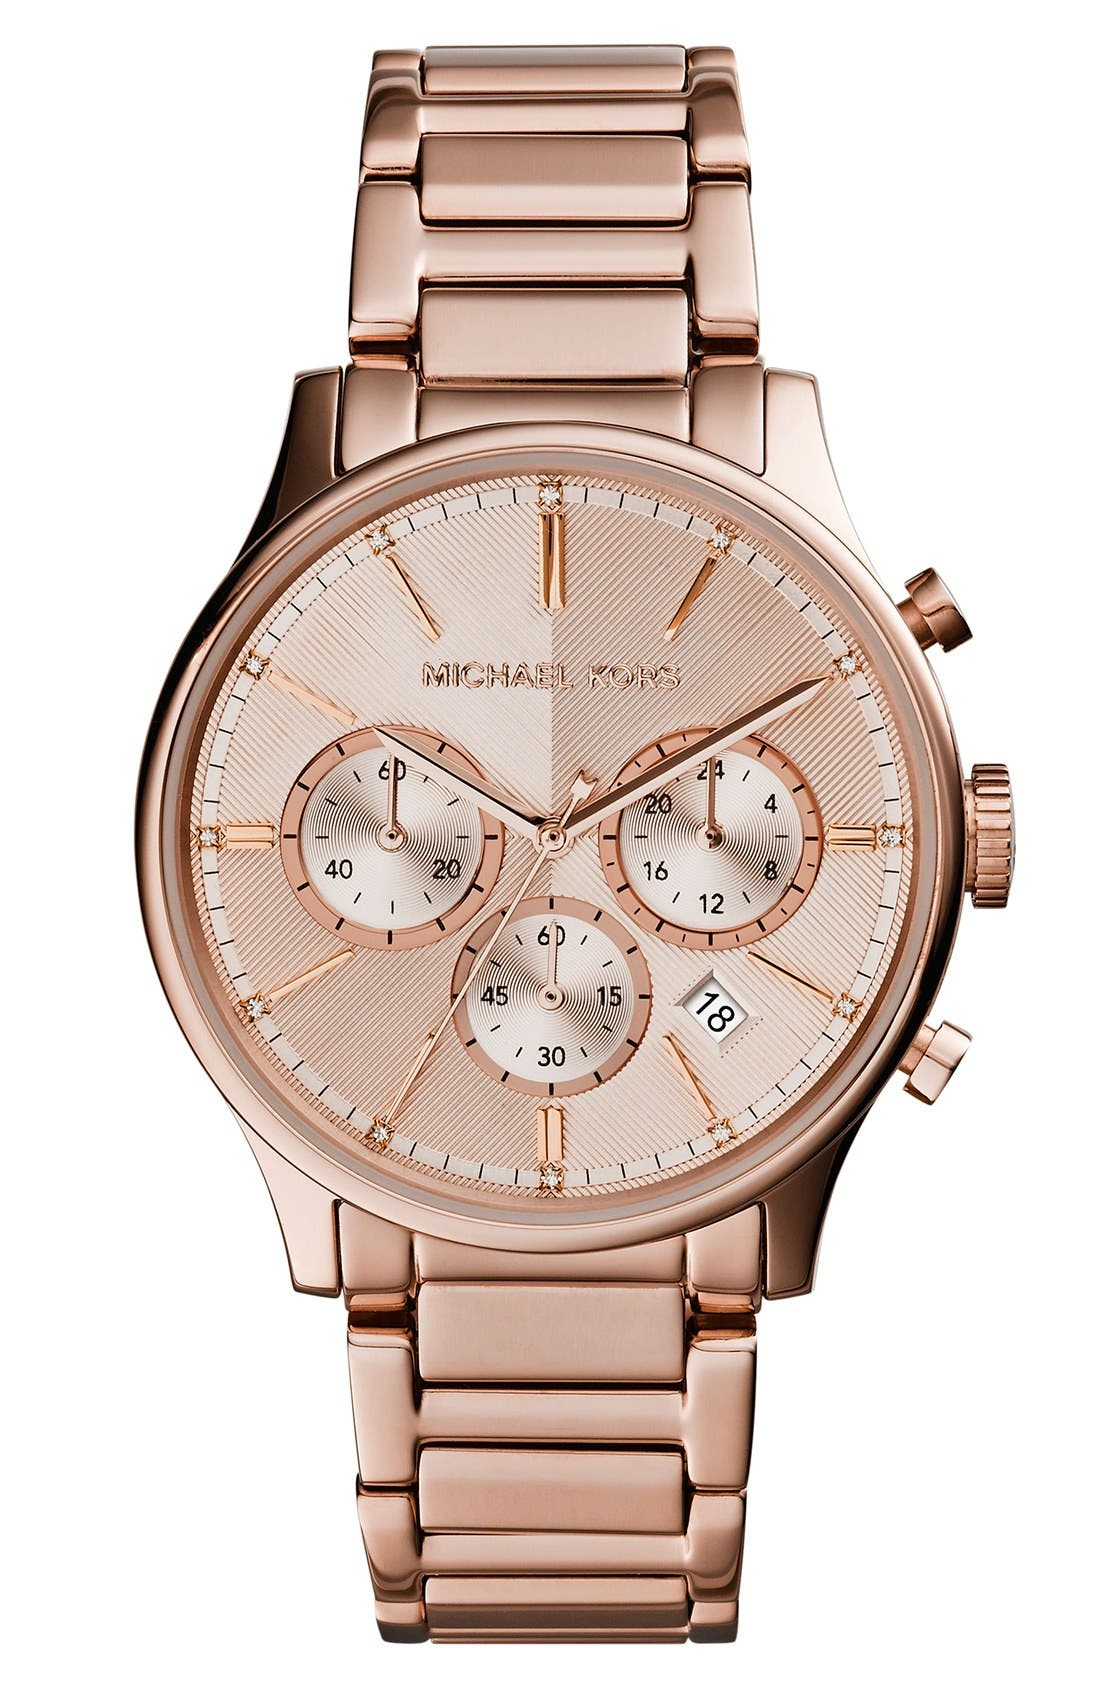 Main Image - Michael Kors 'Bailey' Chronograph Bracelet Watch, 39mm (Nordstrom Exclusive)